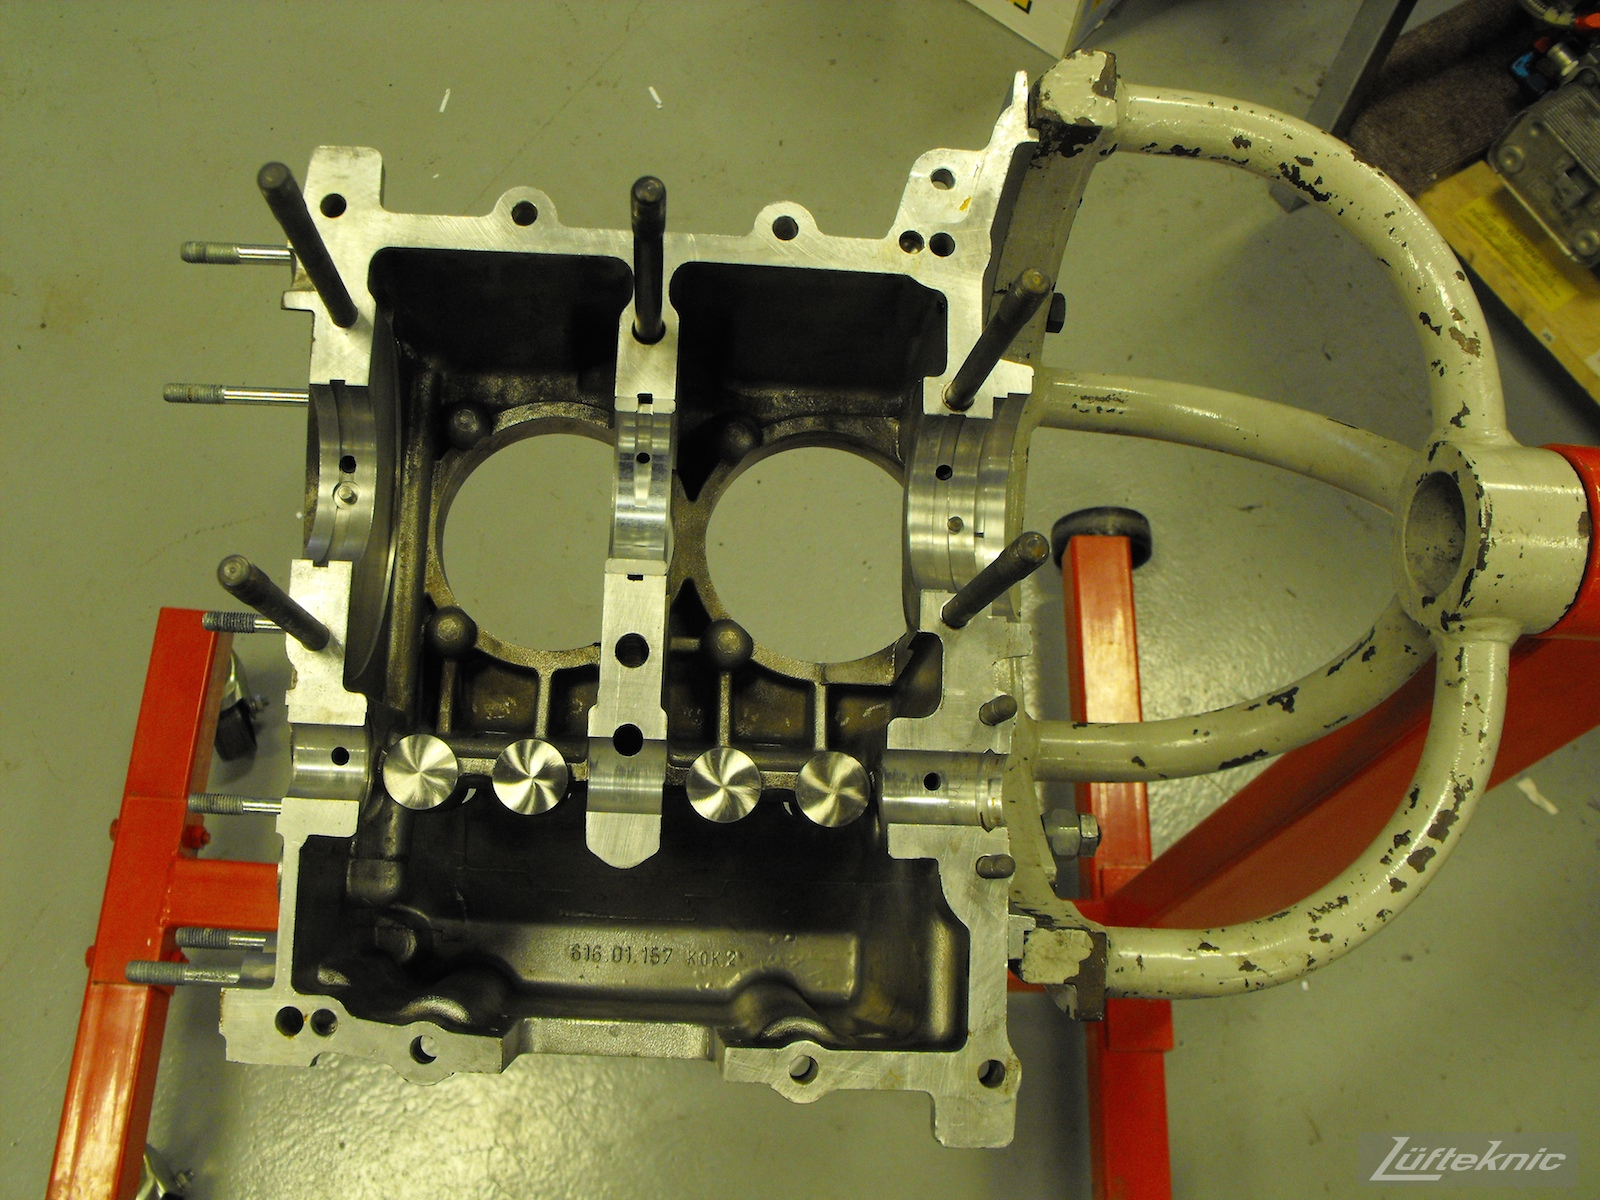 Engine case on a stand for a 1961 Porsche 356B Roadster restoration.